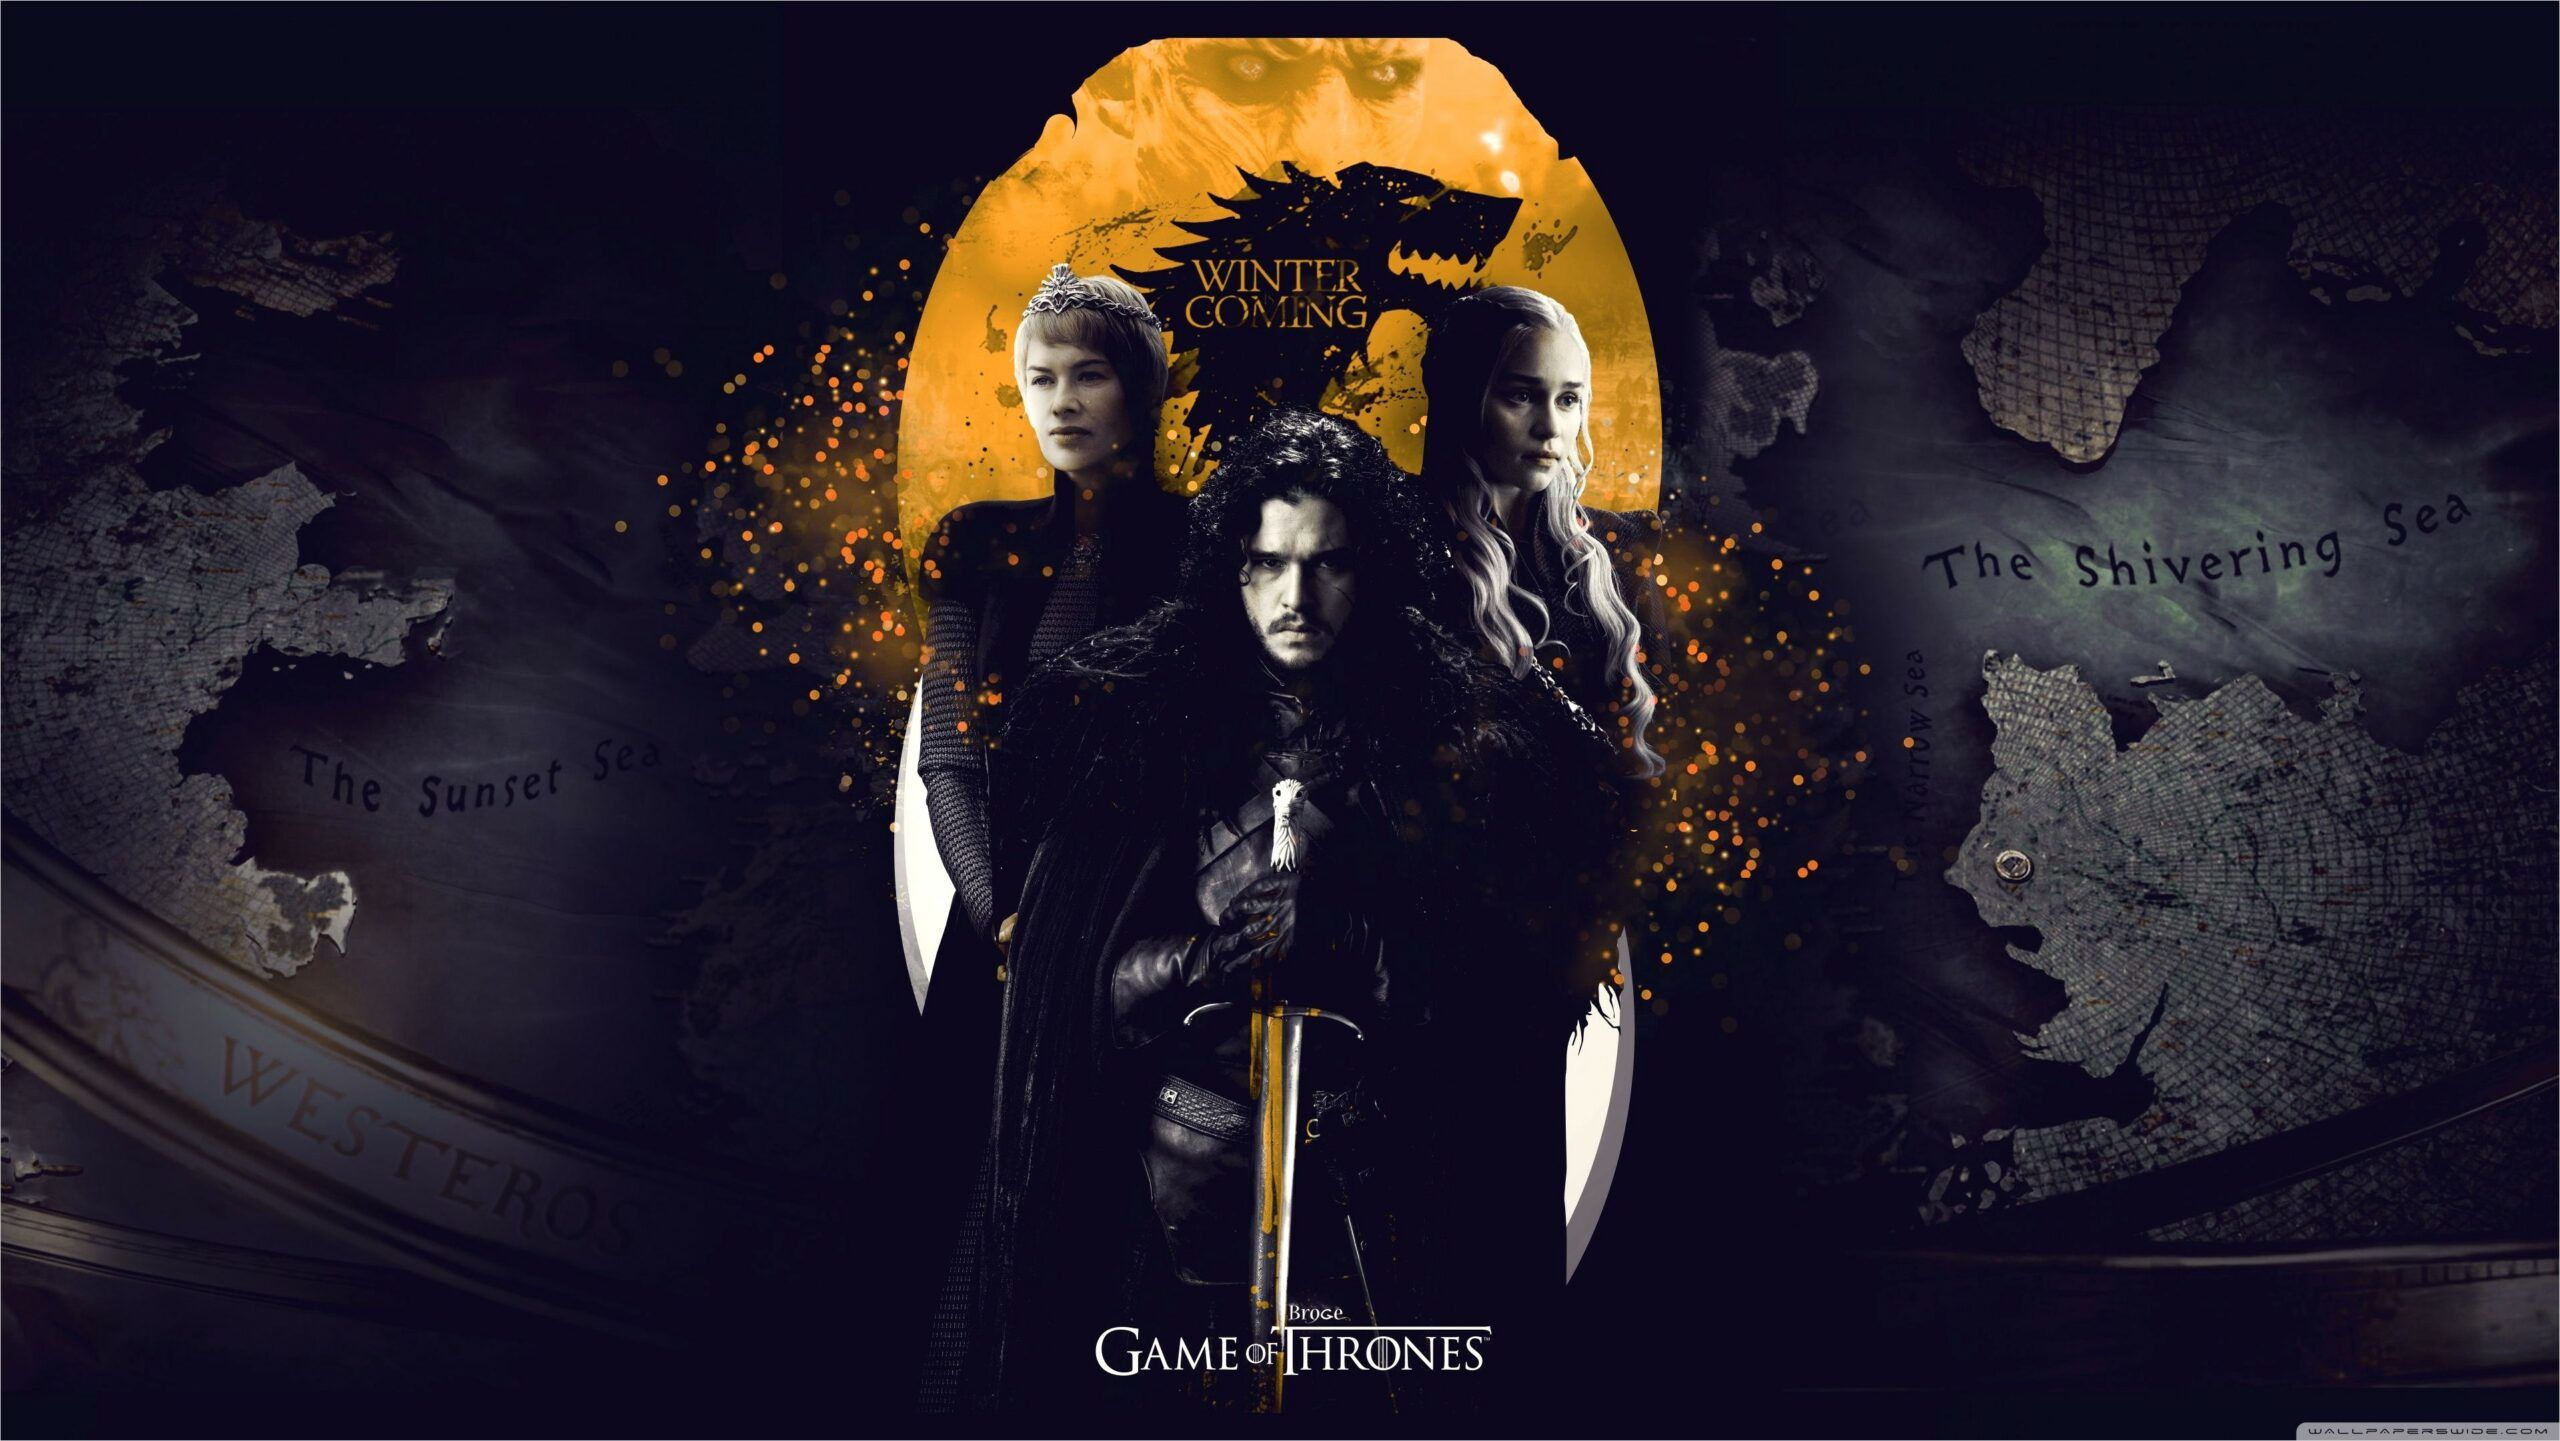 4k Wallpapers Game Of Thrones In 2020 Gaming Wallpapers Hd Hd Wallpaper Game Of Thrones Free